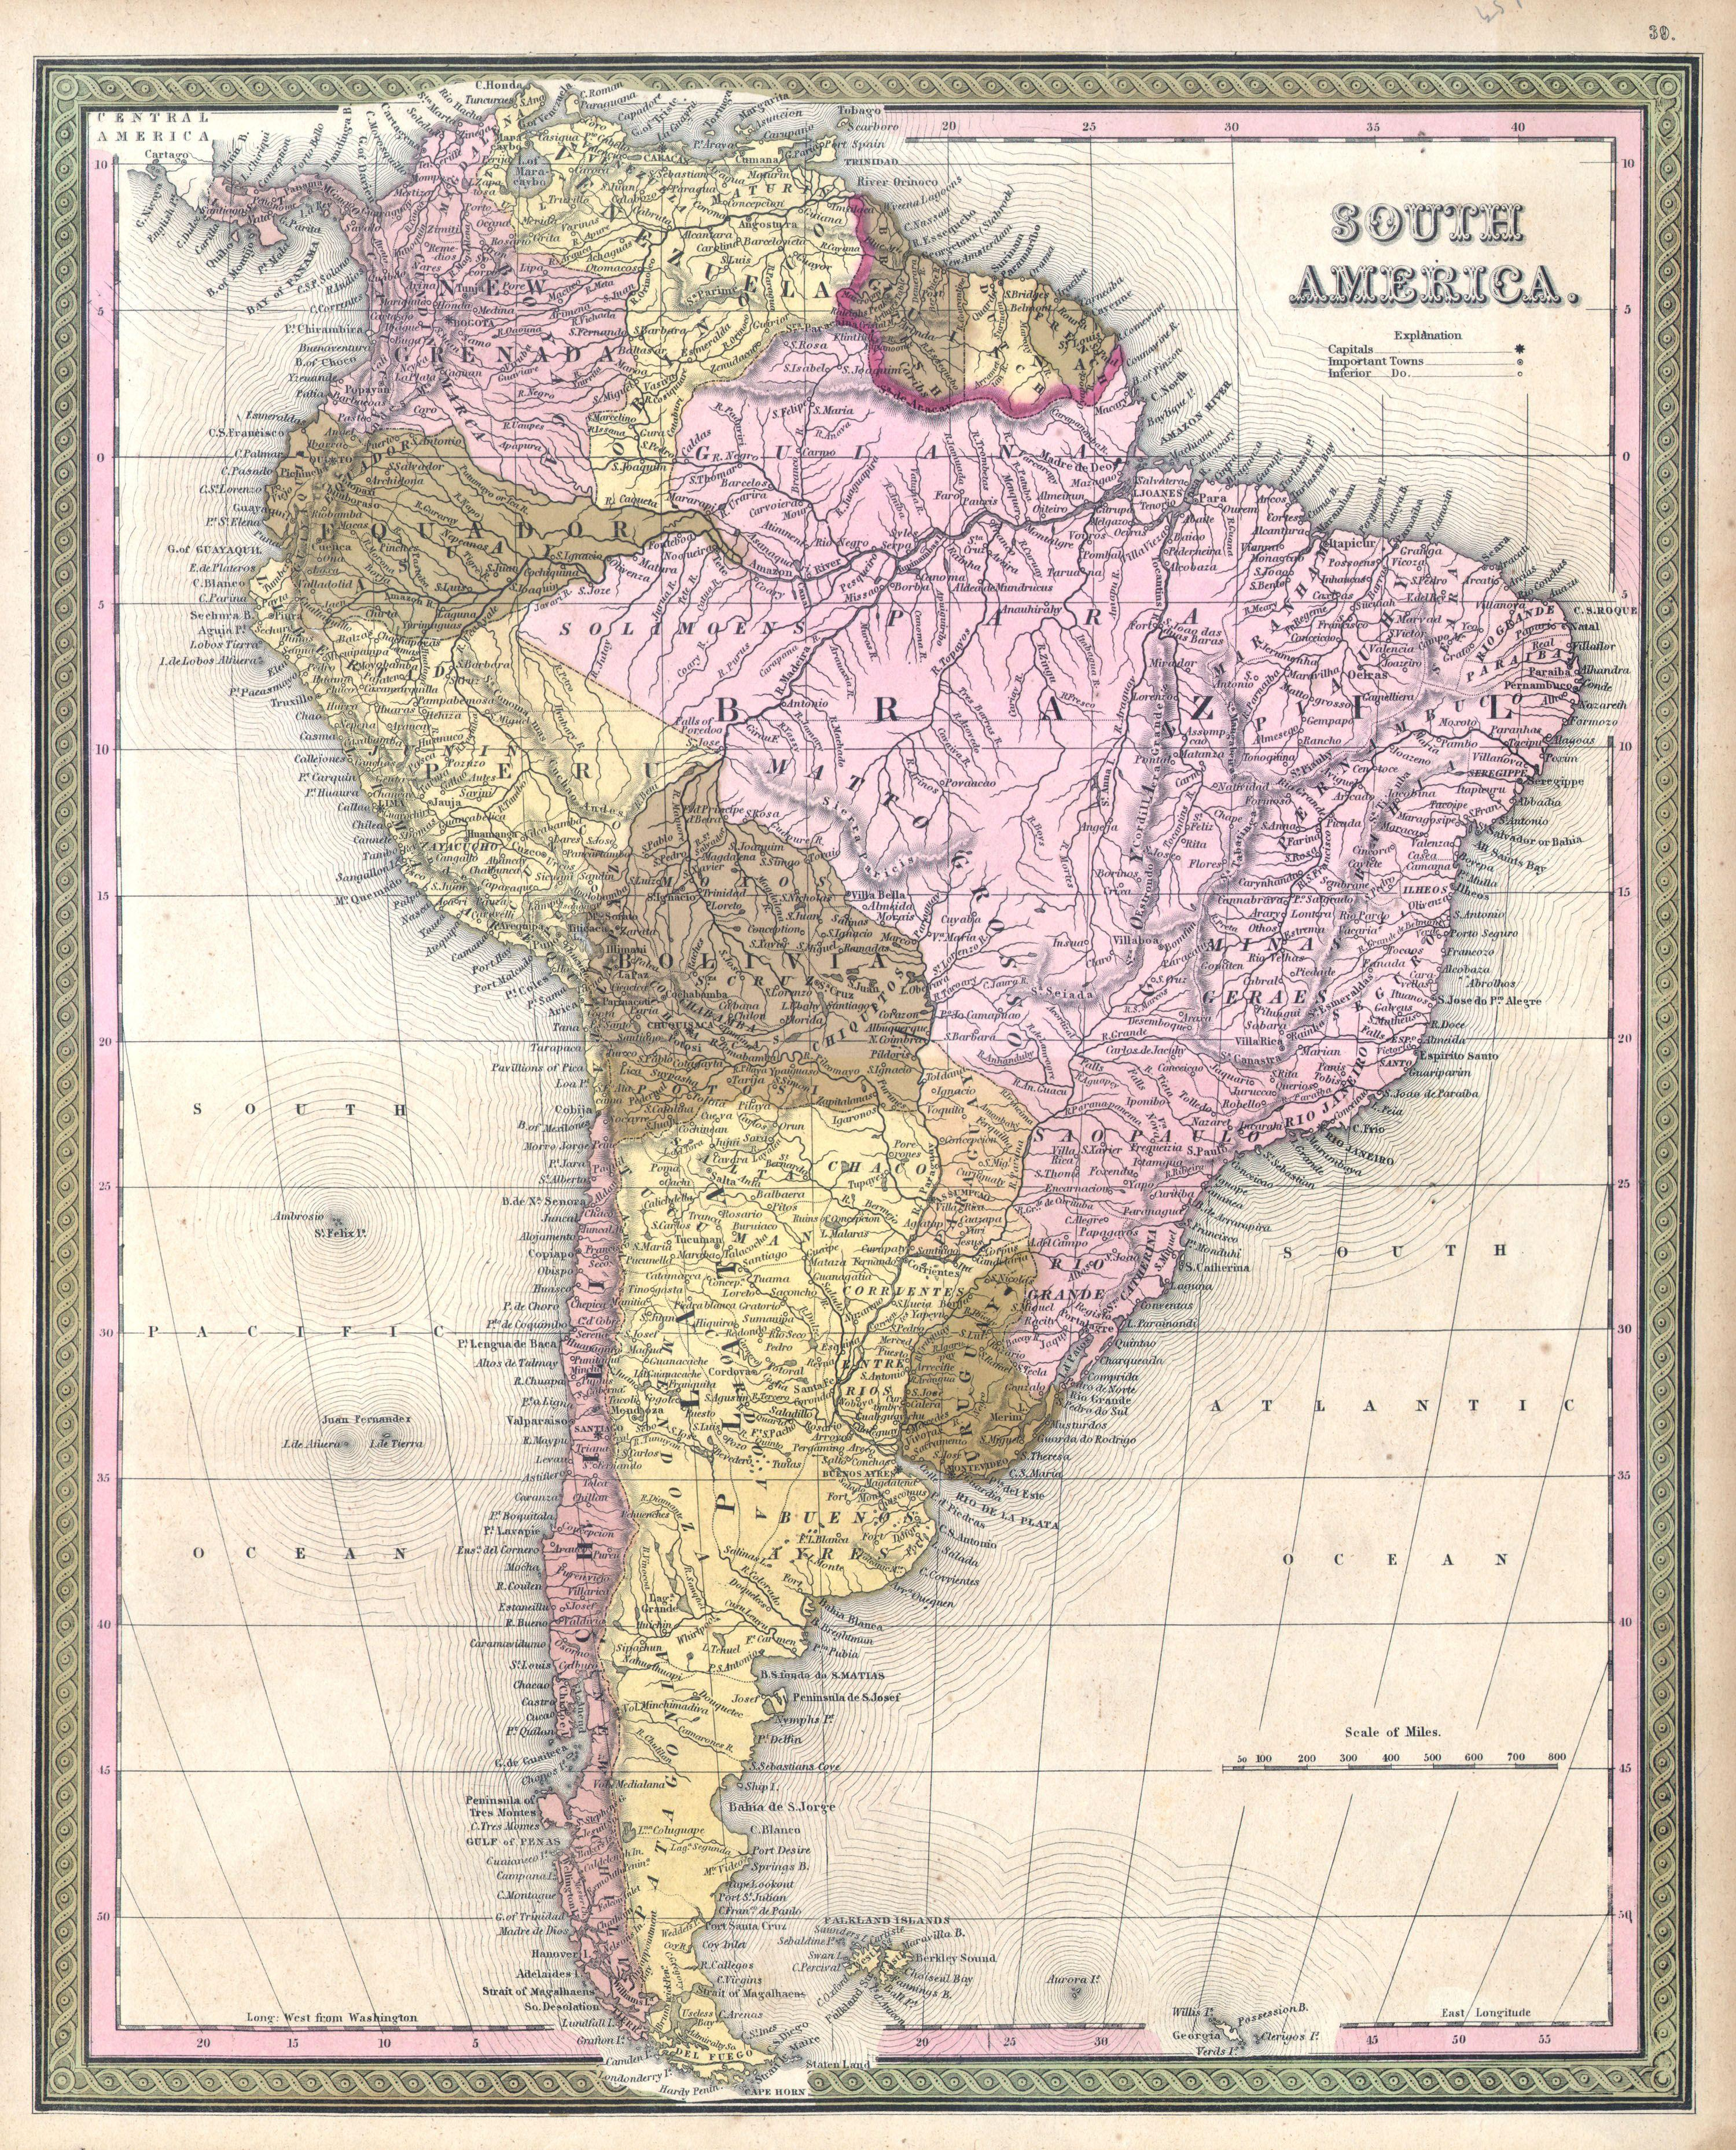 Map of South America, published 1850